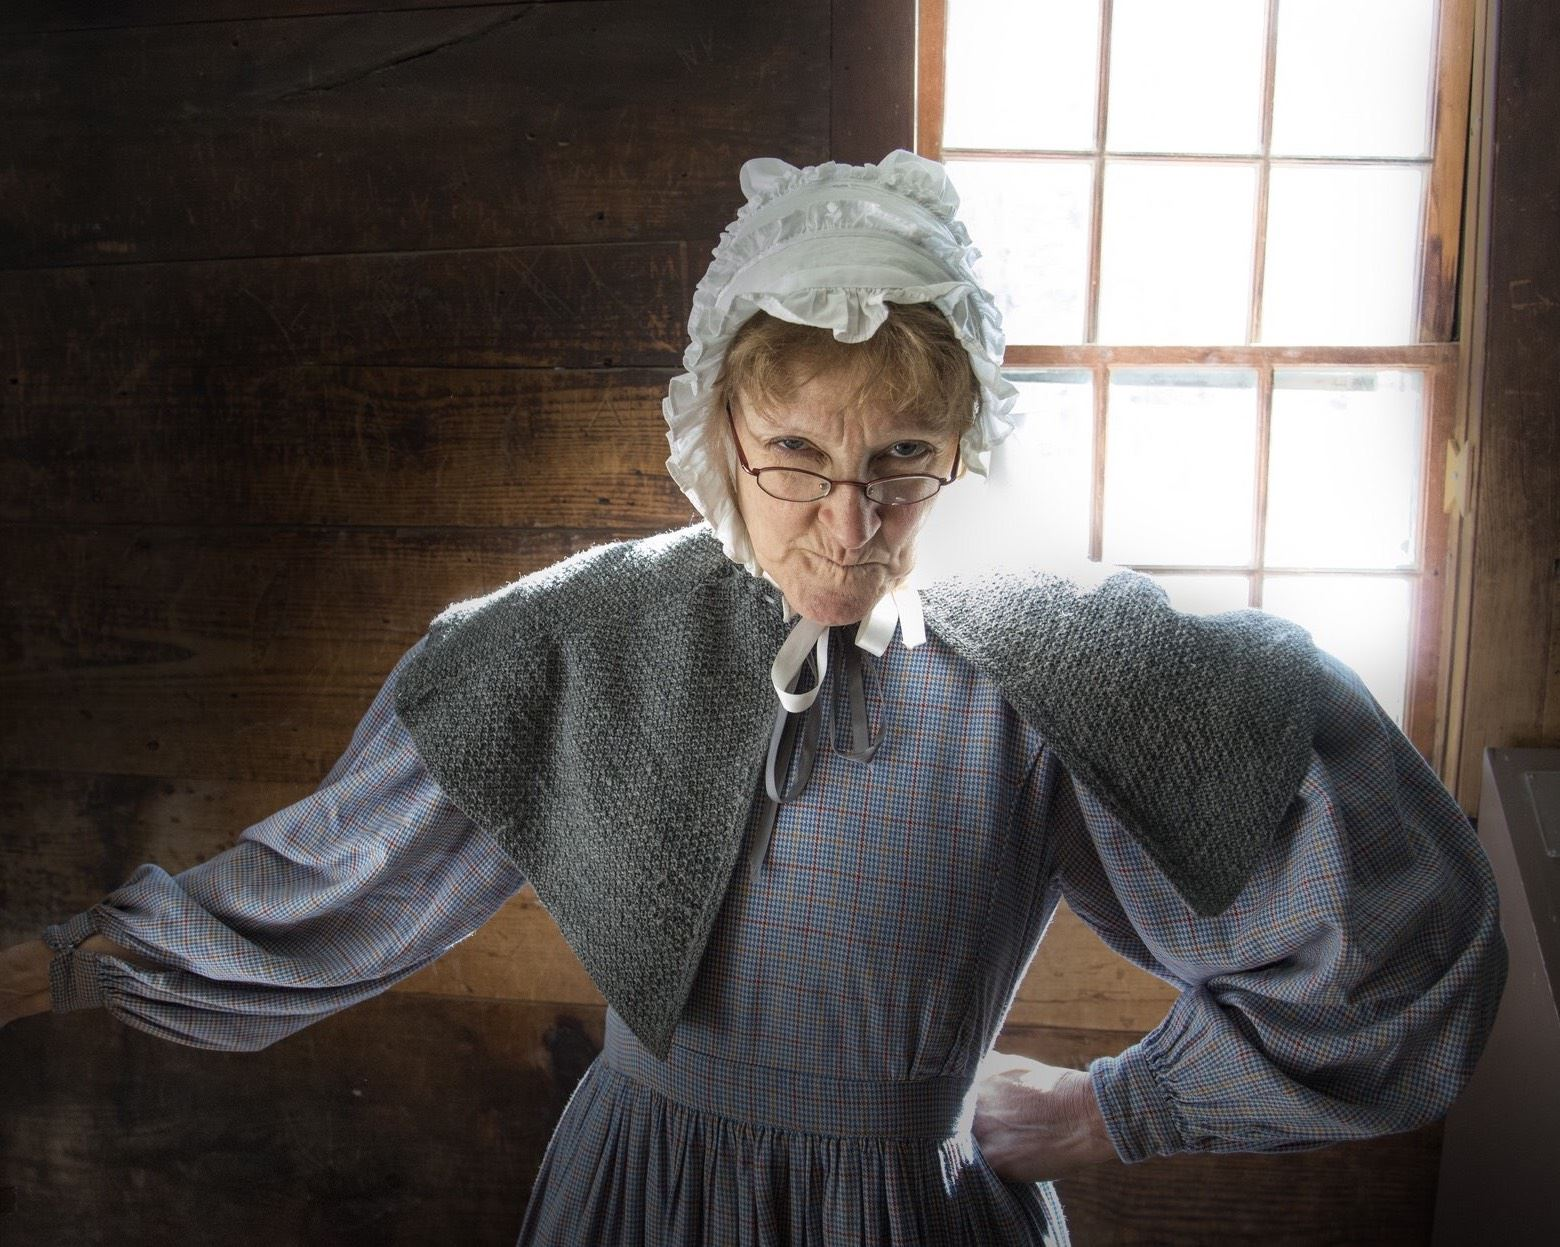 The Schoolkeeper at Old Sturbridge Village